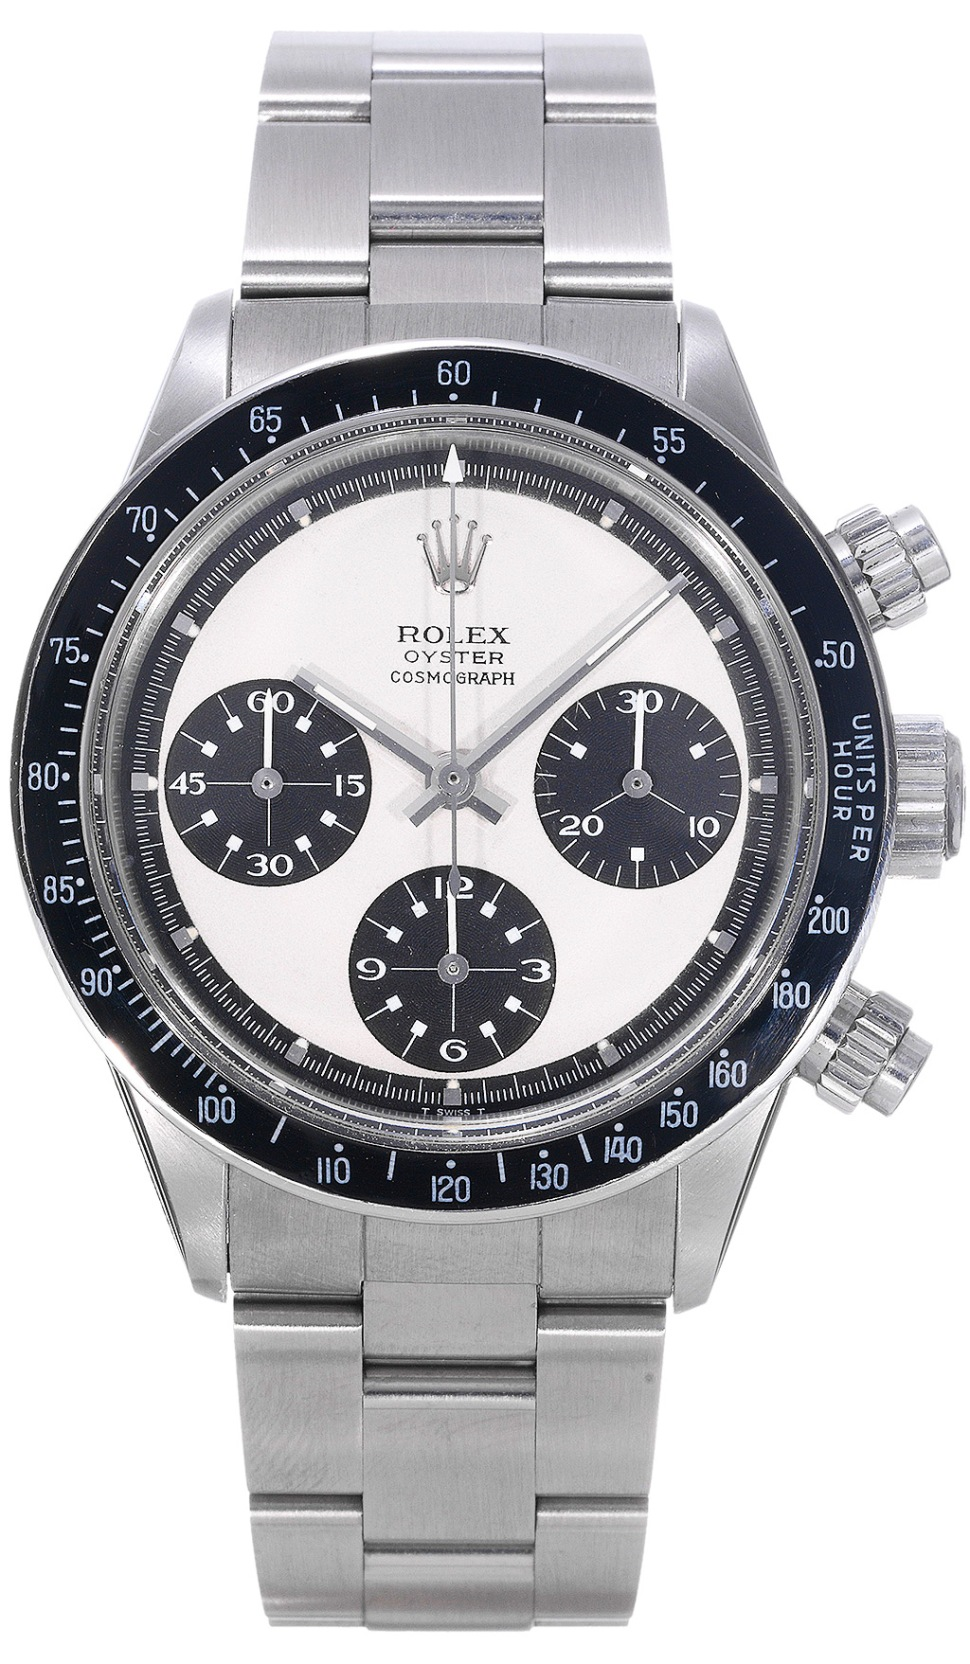 190714-rolex-daytona-6240-1439087-christies-nov-2008